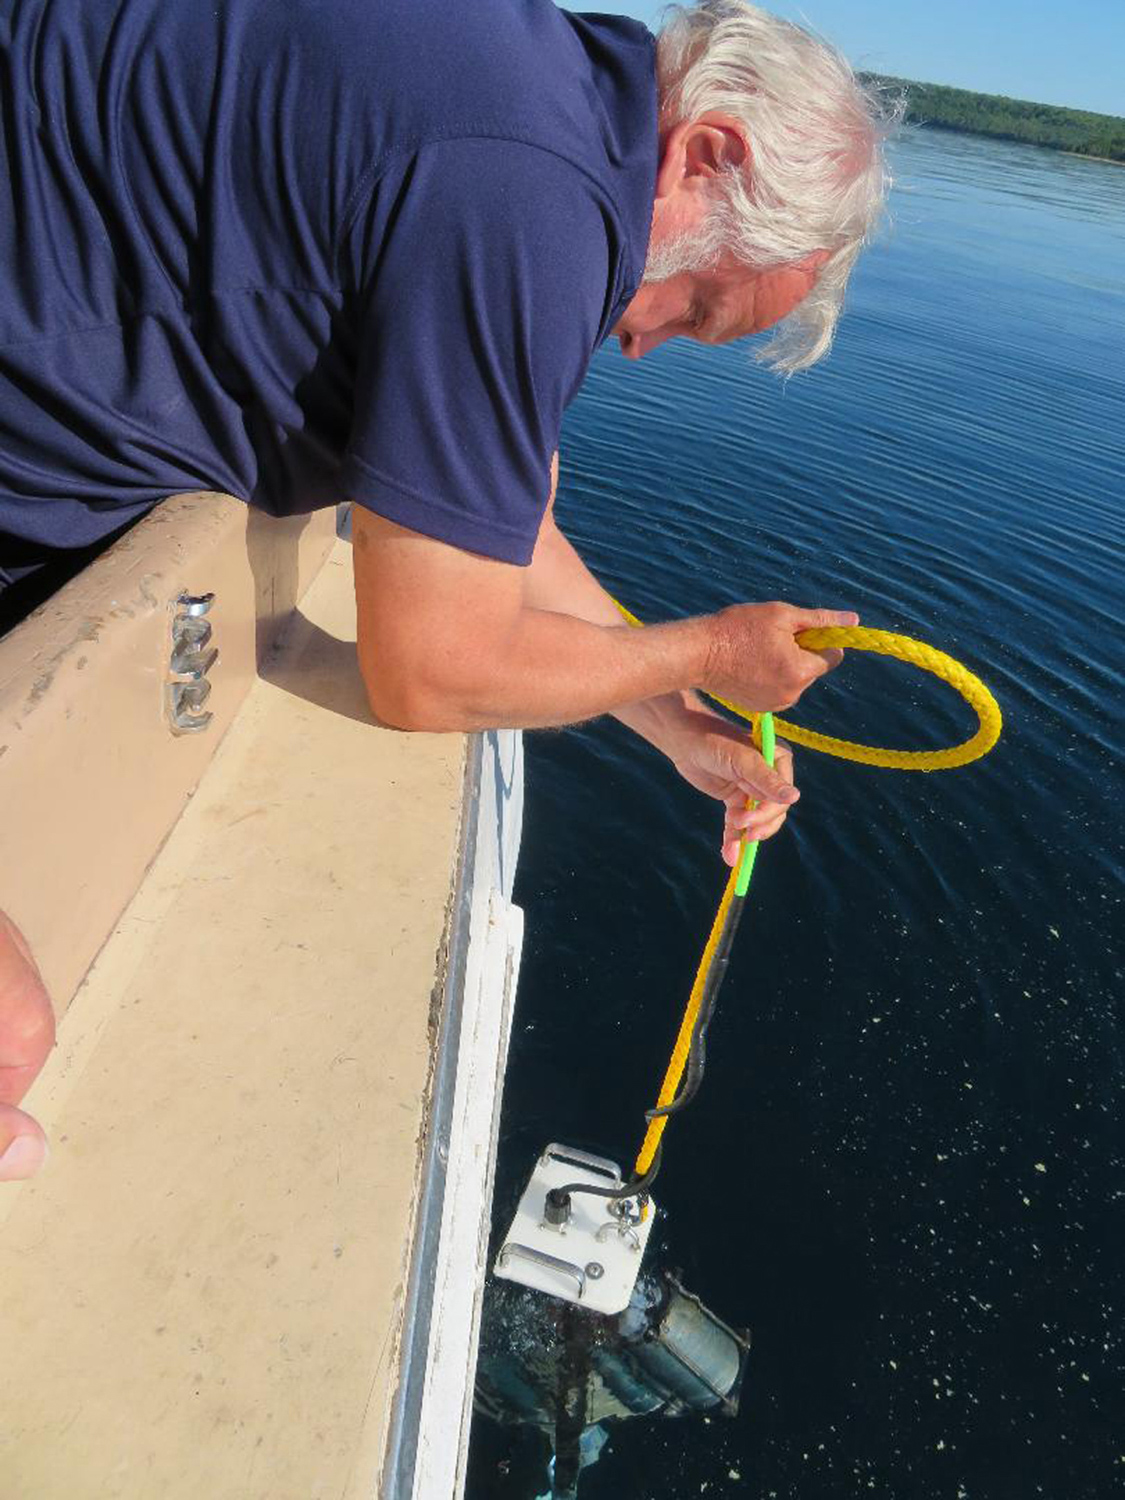 Cris Kohl carefully lowers Jerry Eliason's underwater video camera and lights so the team on the boat can view the wreck of the MANASOO without even getting wet!